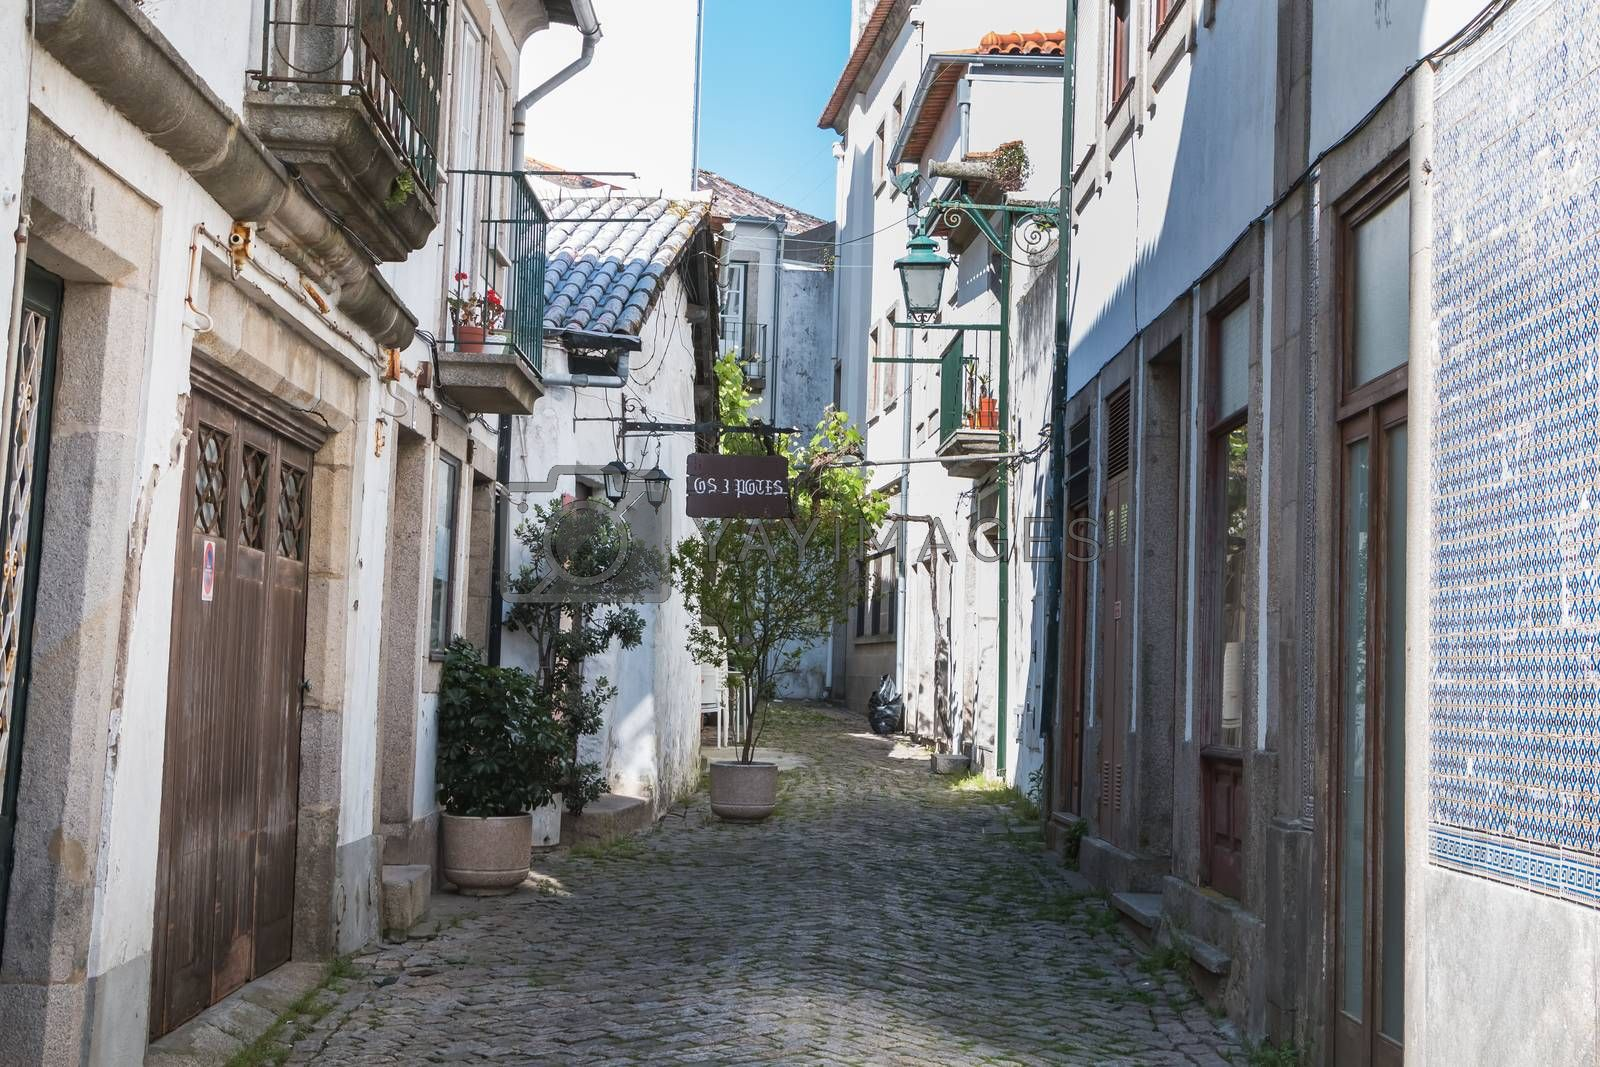 Viana Do Castelo, Portugal, Portugal - May 10, 2018: Architecture detail of typical houses and shops in the streets of the historic city center that tourists visit on a spring day